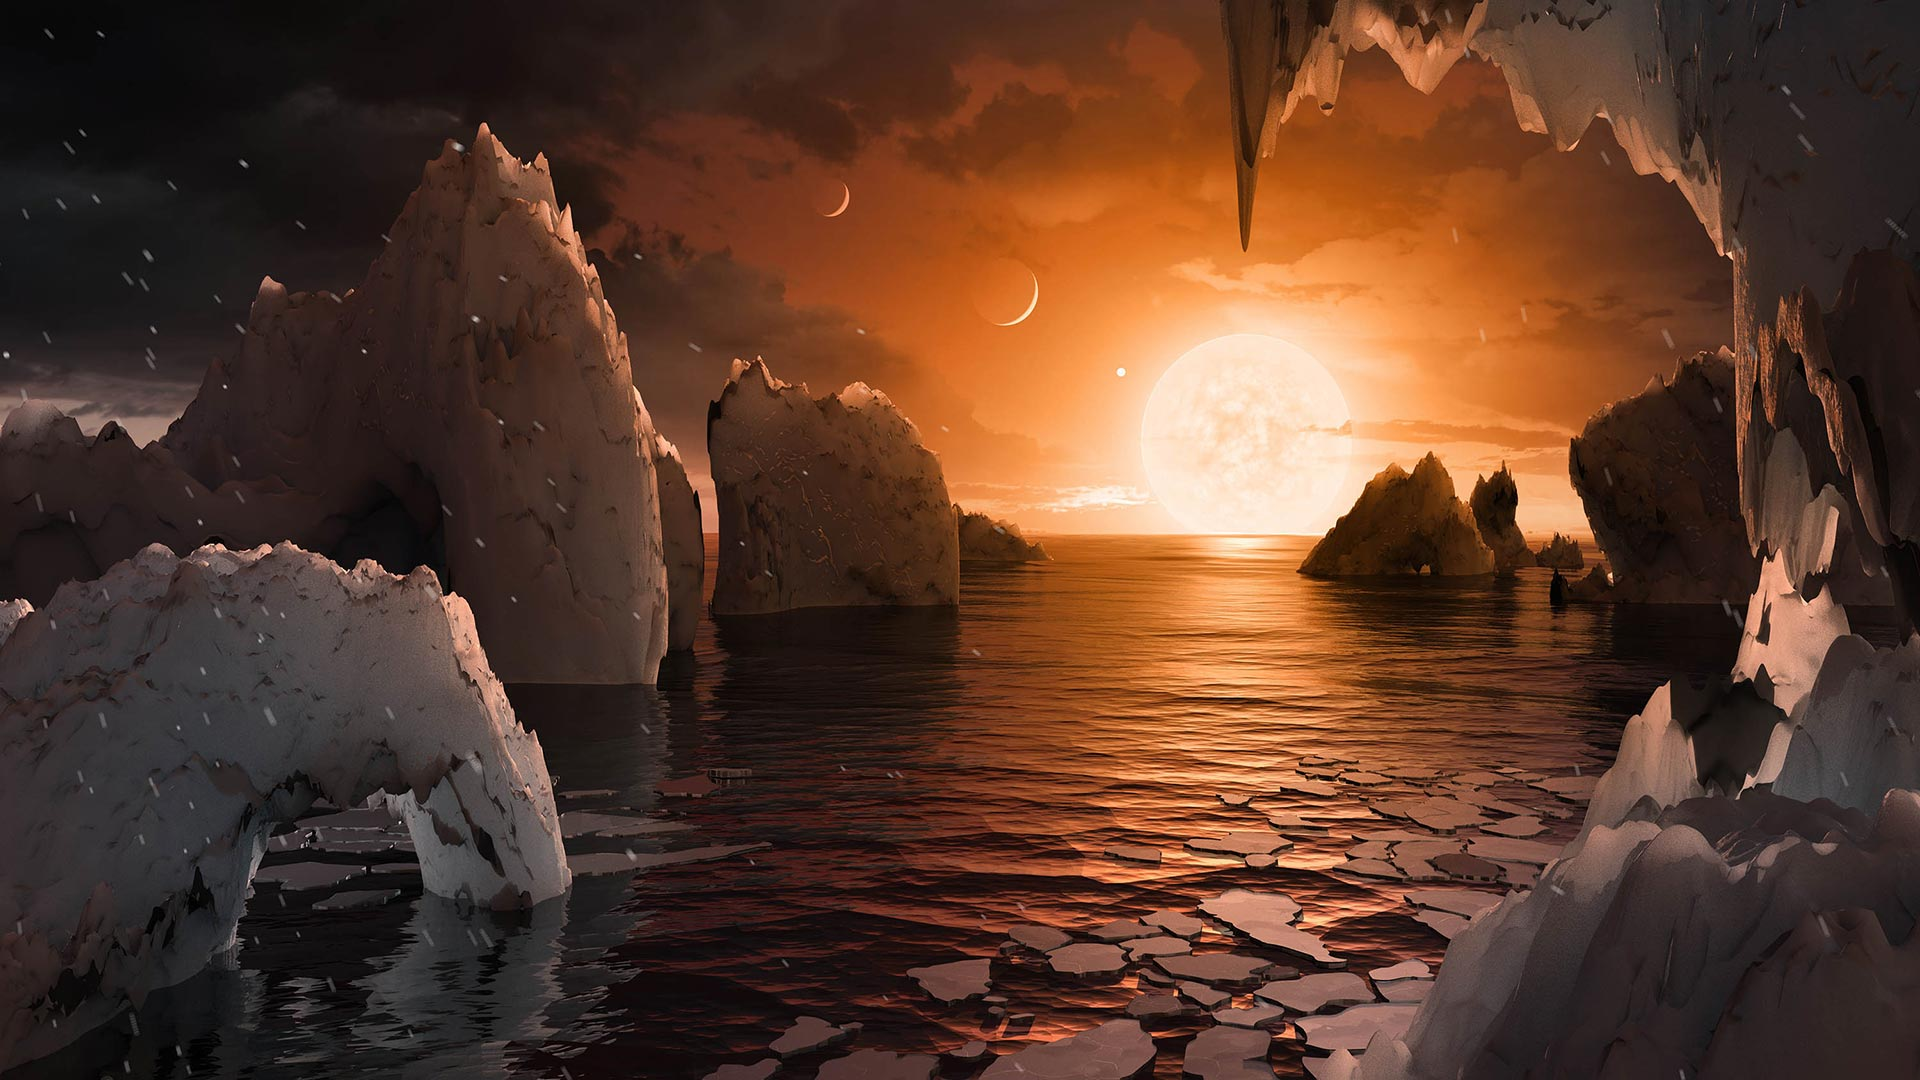 This artist's concept depicts what it would be like to stand on the surface of the exoplanet TRAPPIST-1f, located in the TRAPPIST-1 system in the constellation Aquarius.